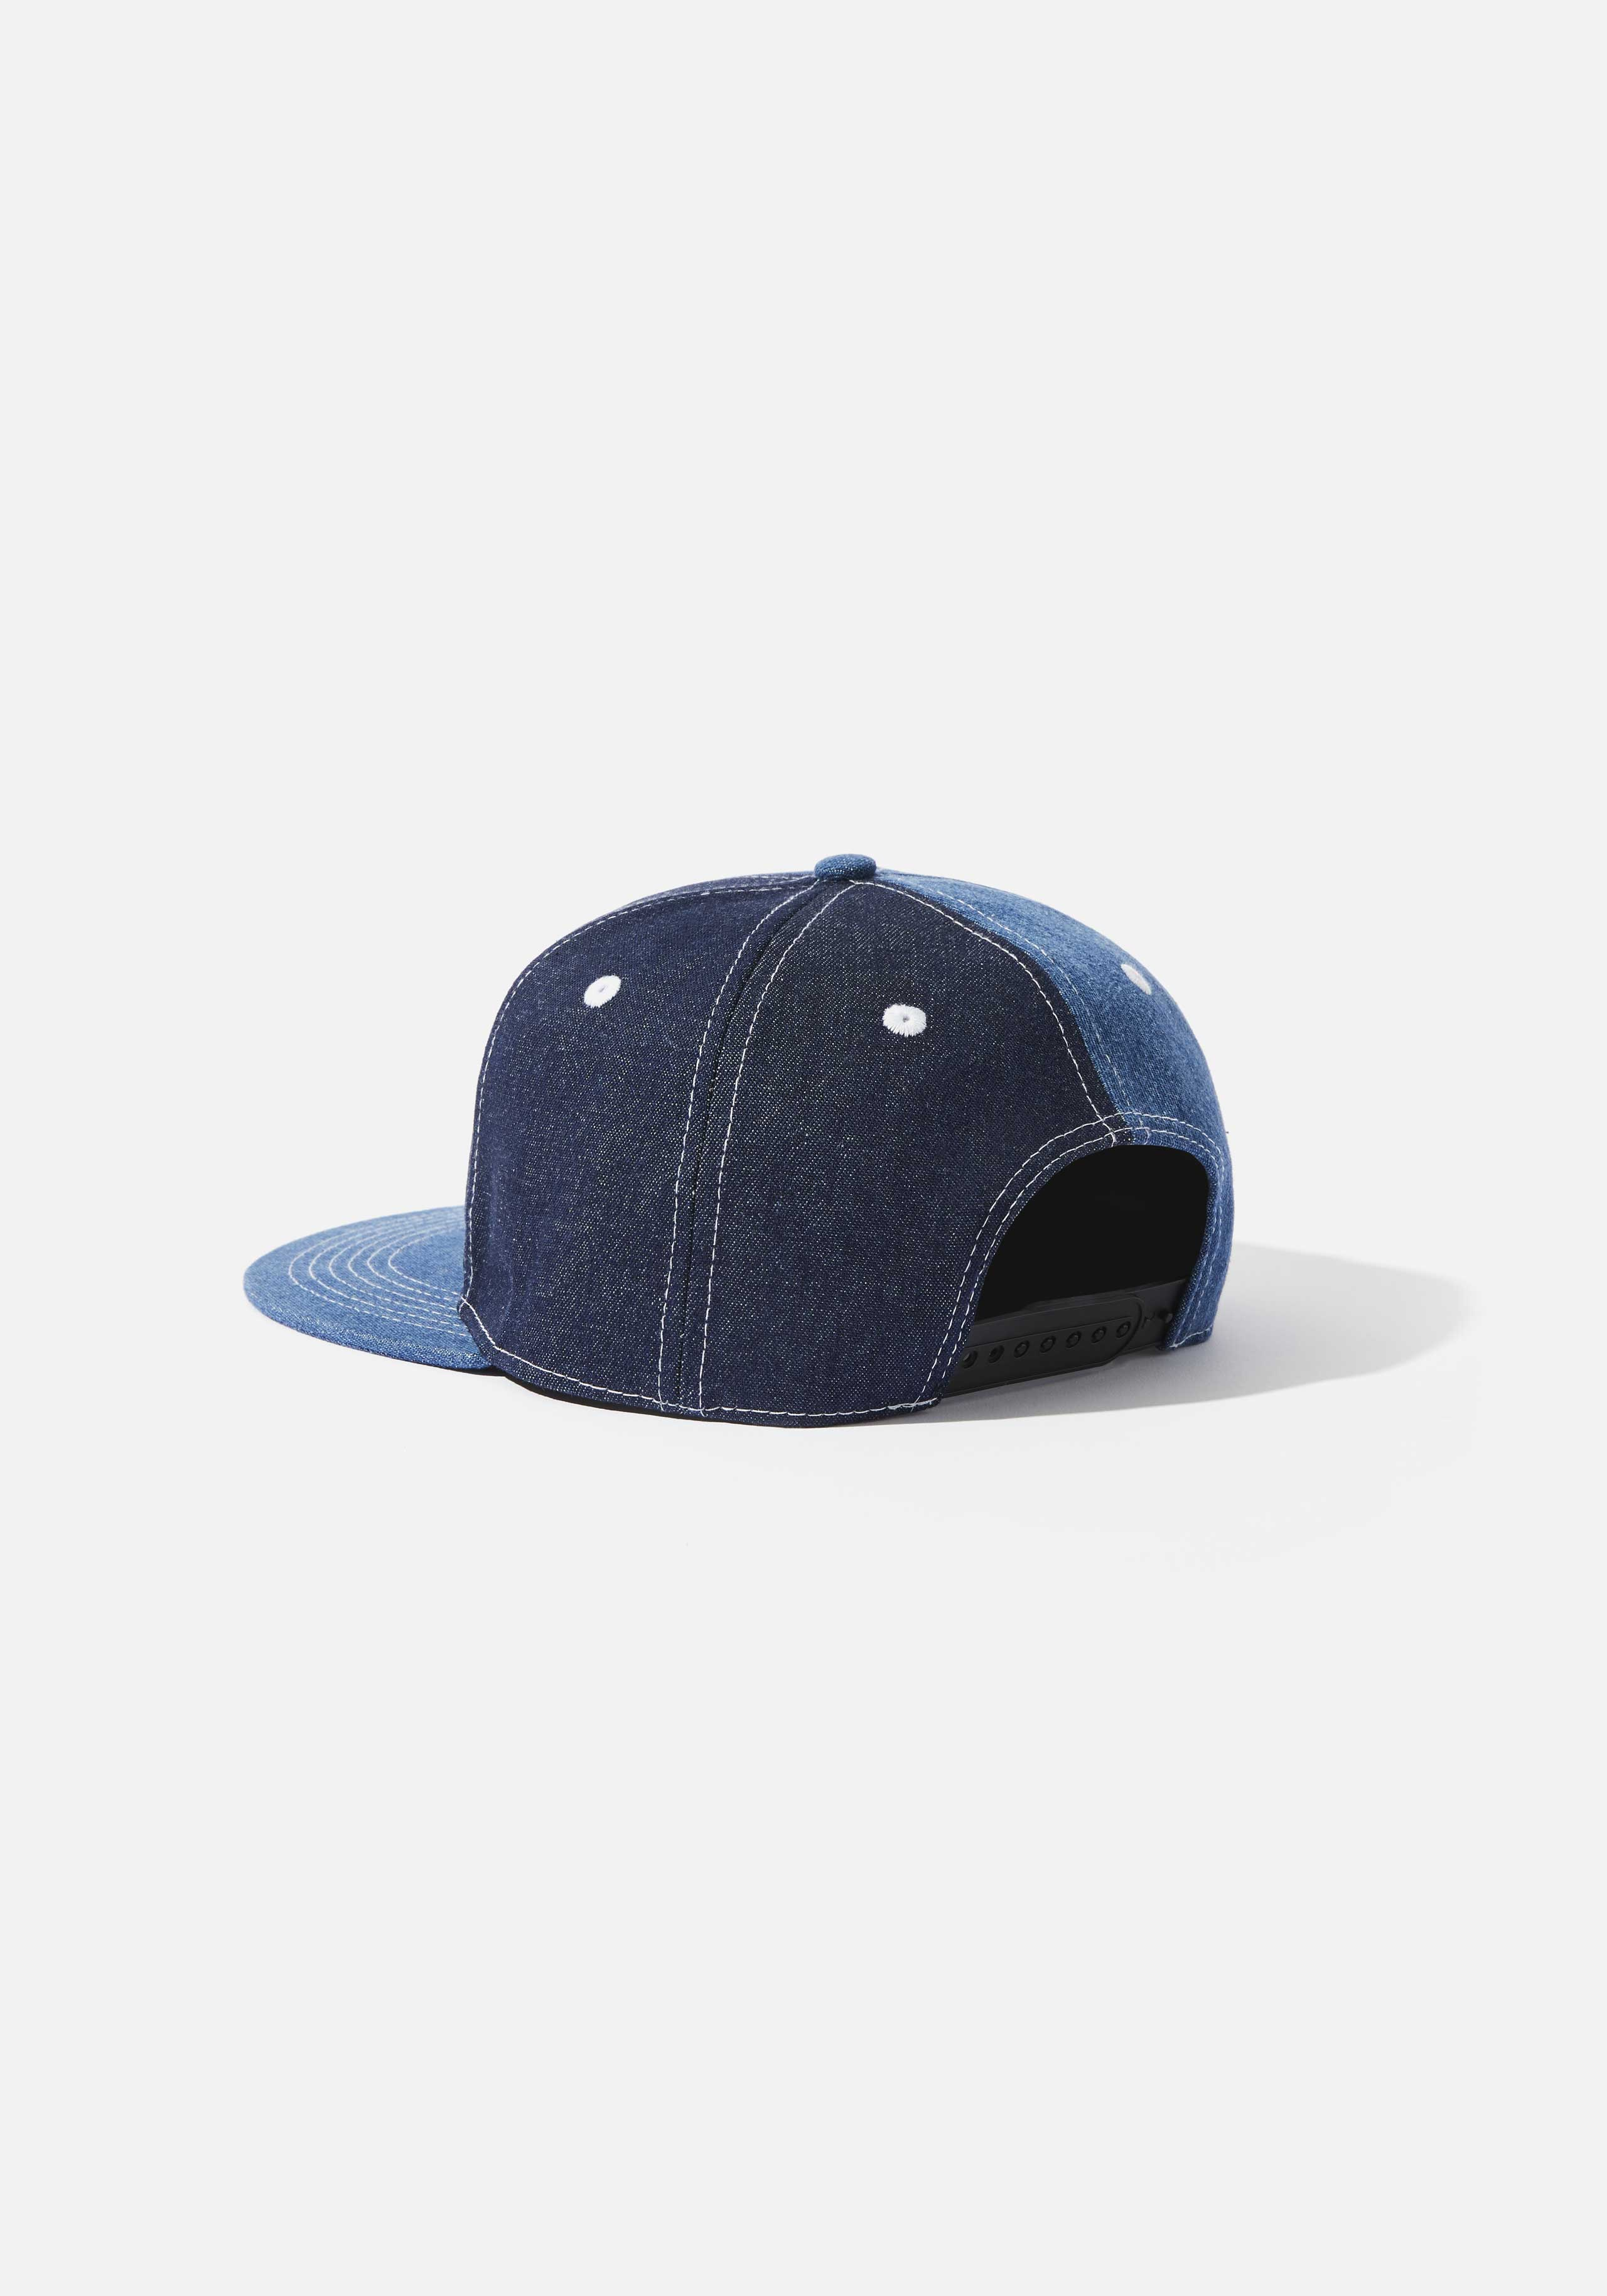 mki denim ball cap 5